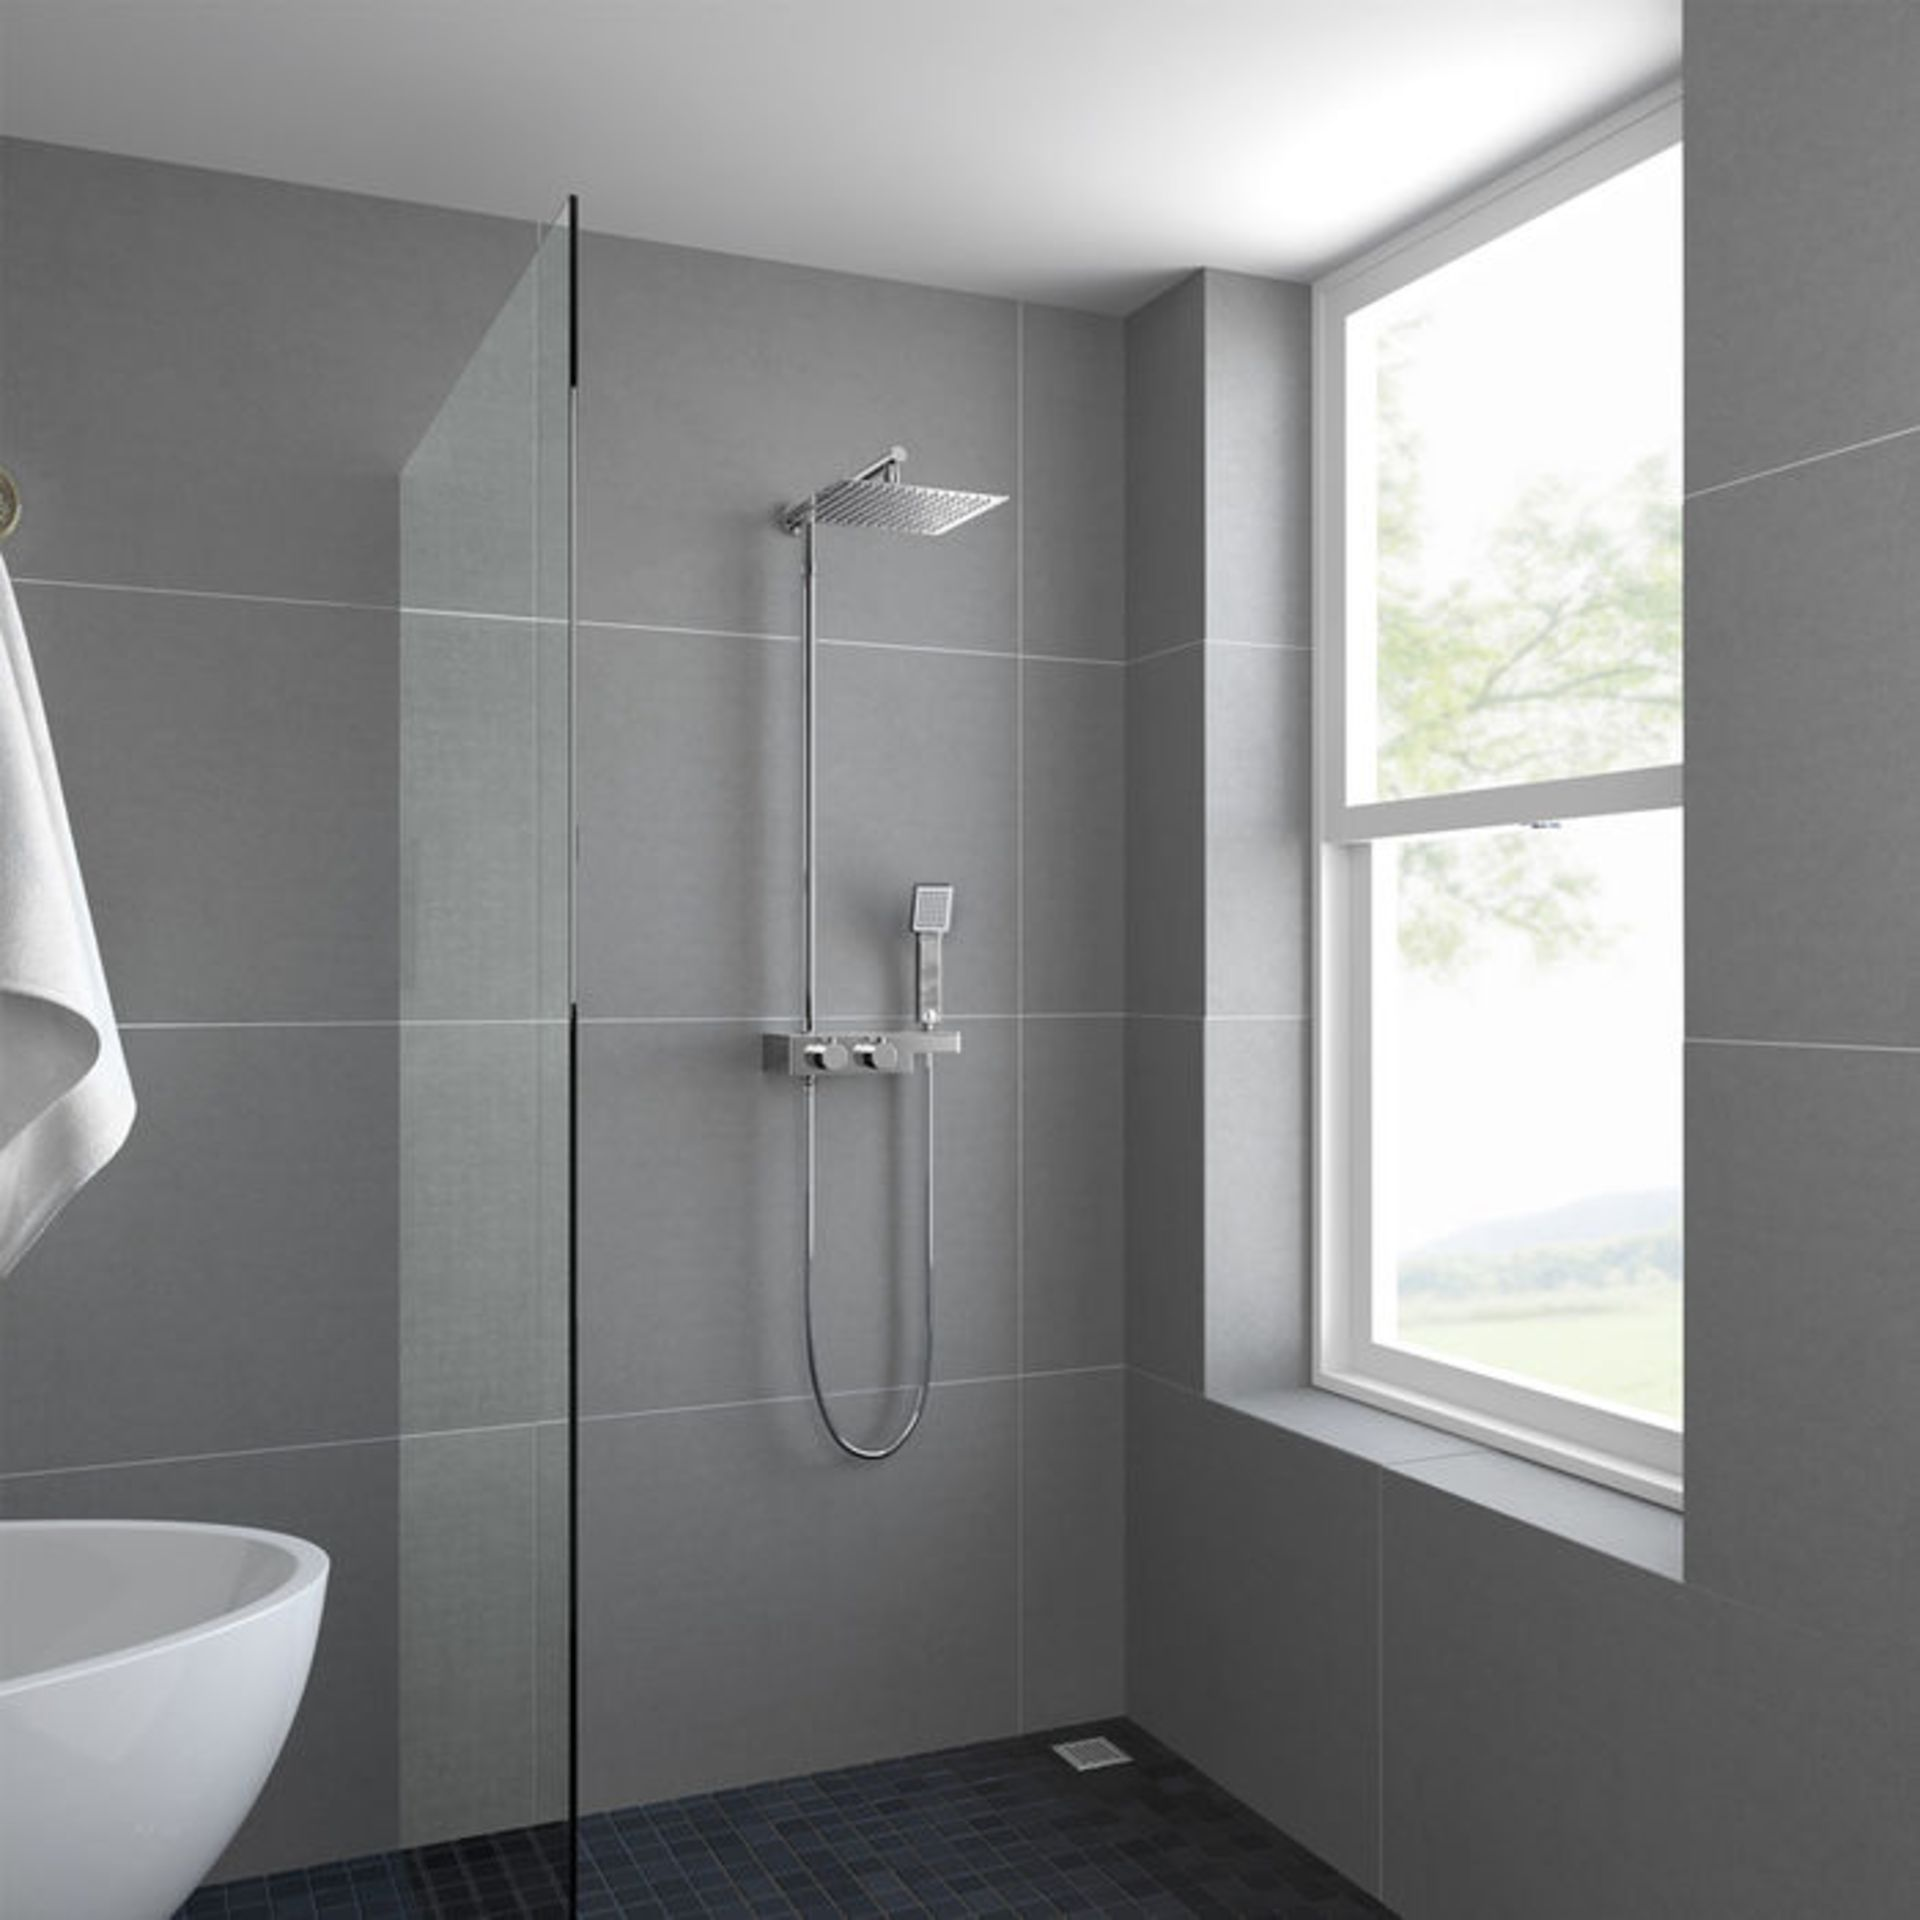 Lot 31 - (XX21) Square Exposed Thermostatic Shower Shelf, Kit & Large Head. RRP £349.99. Style meets fu...